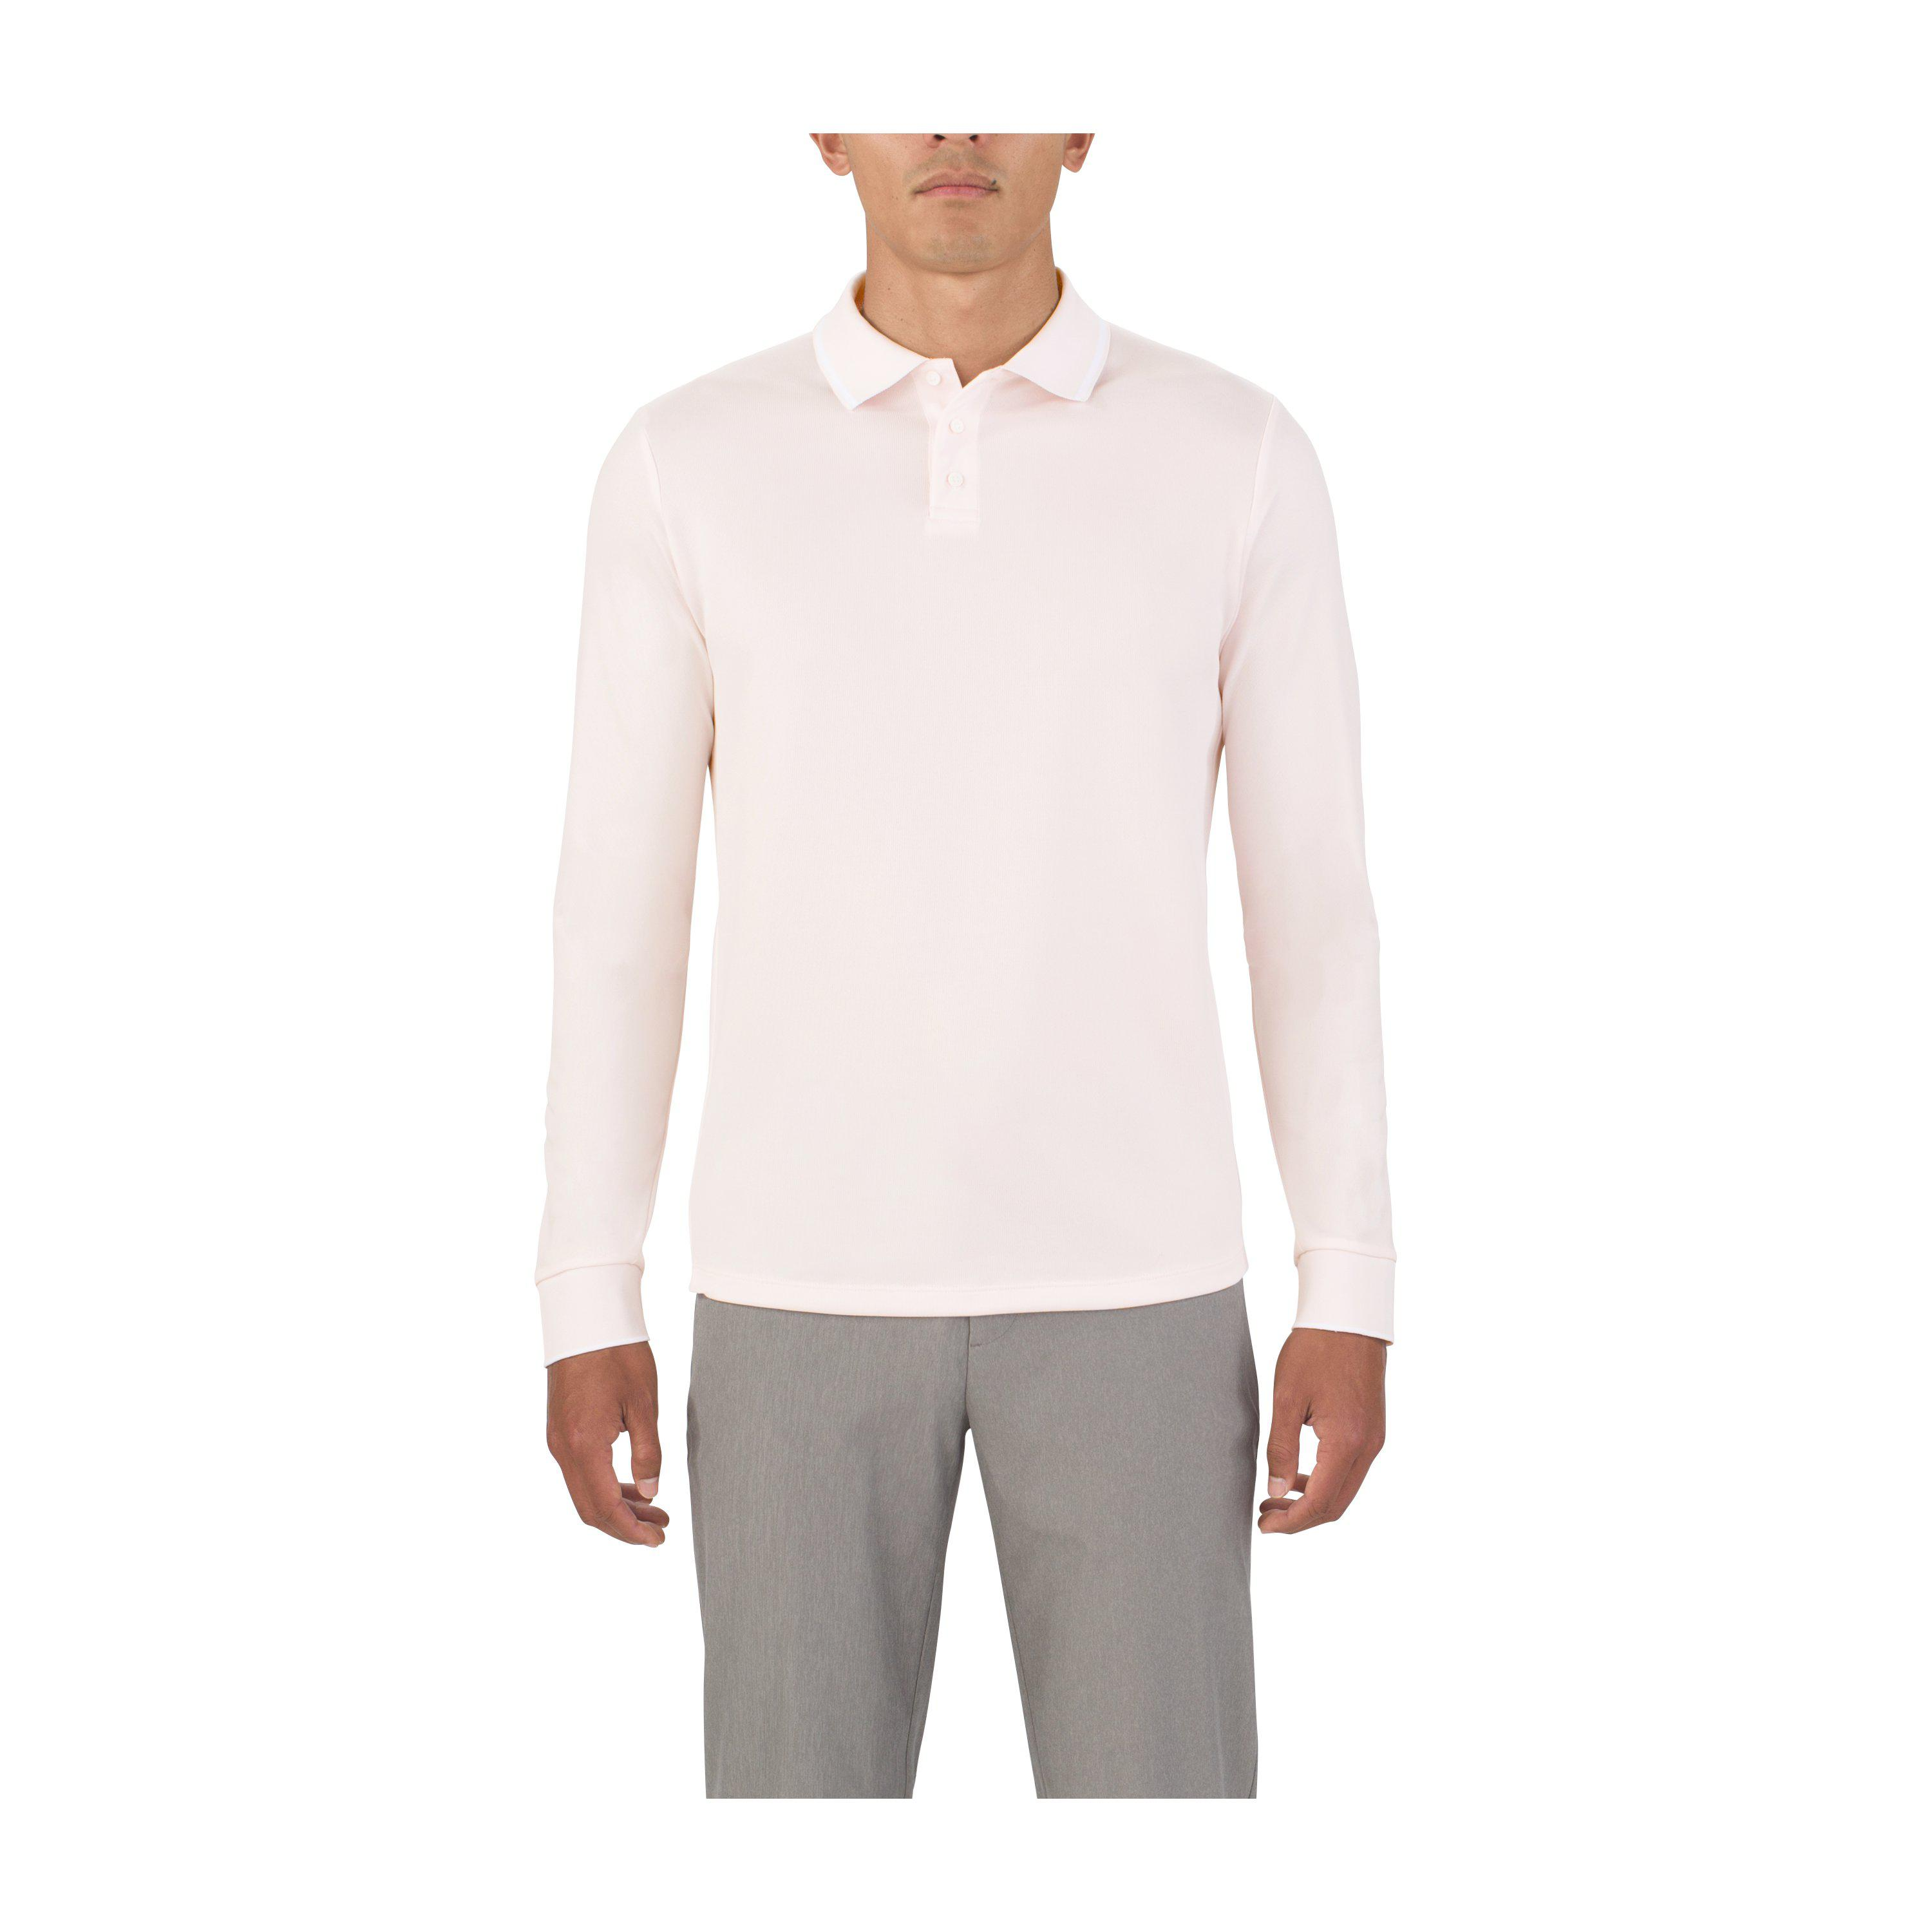 Lyst Under Armour Mens Uas Pique Long Sleeve Polo For Men